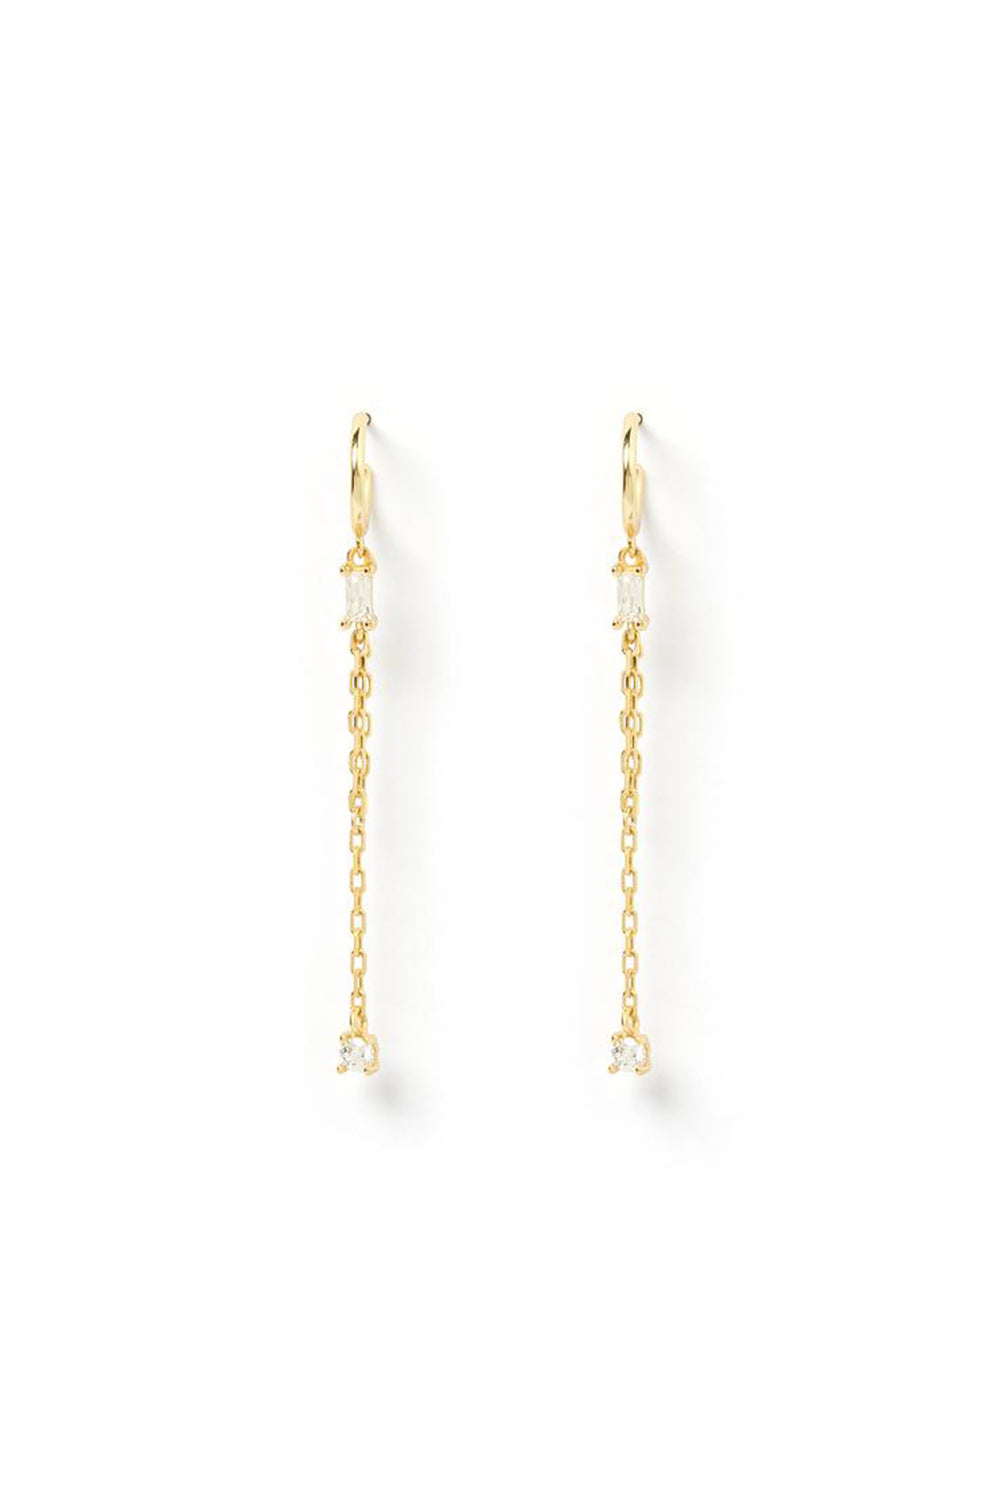 ARMS OF EVE - Queenie Gold Earrings